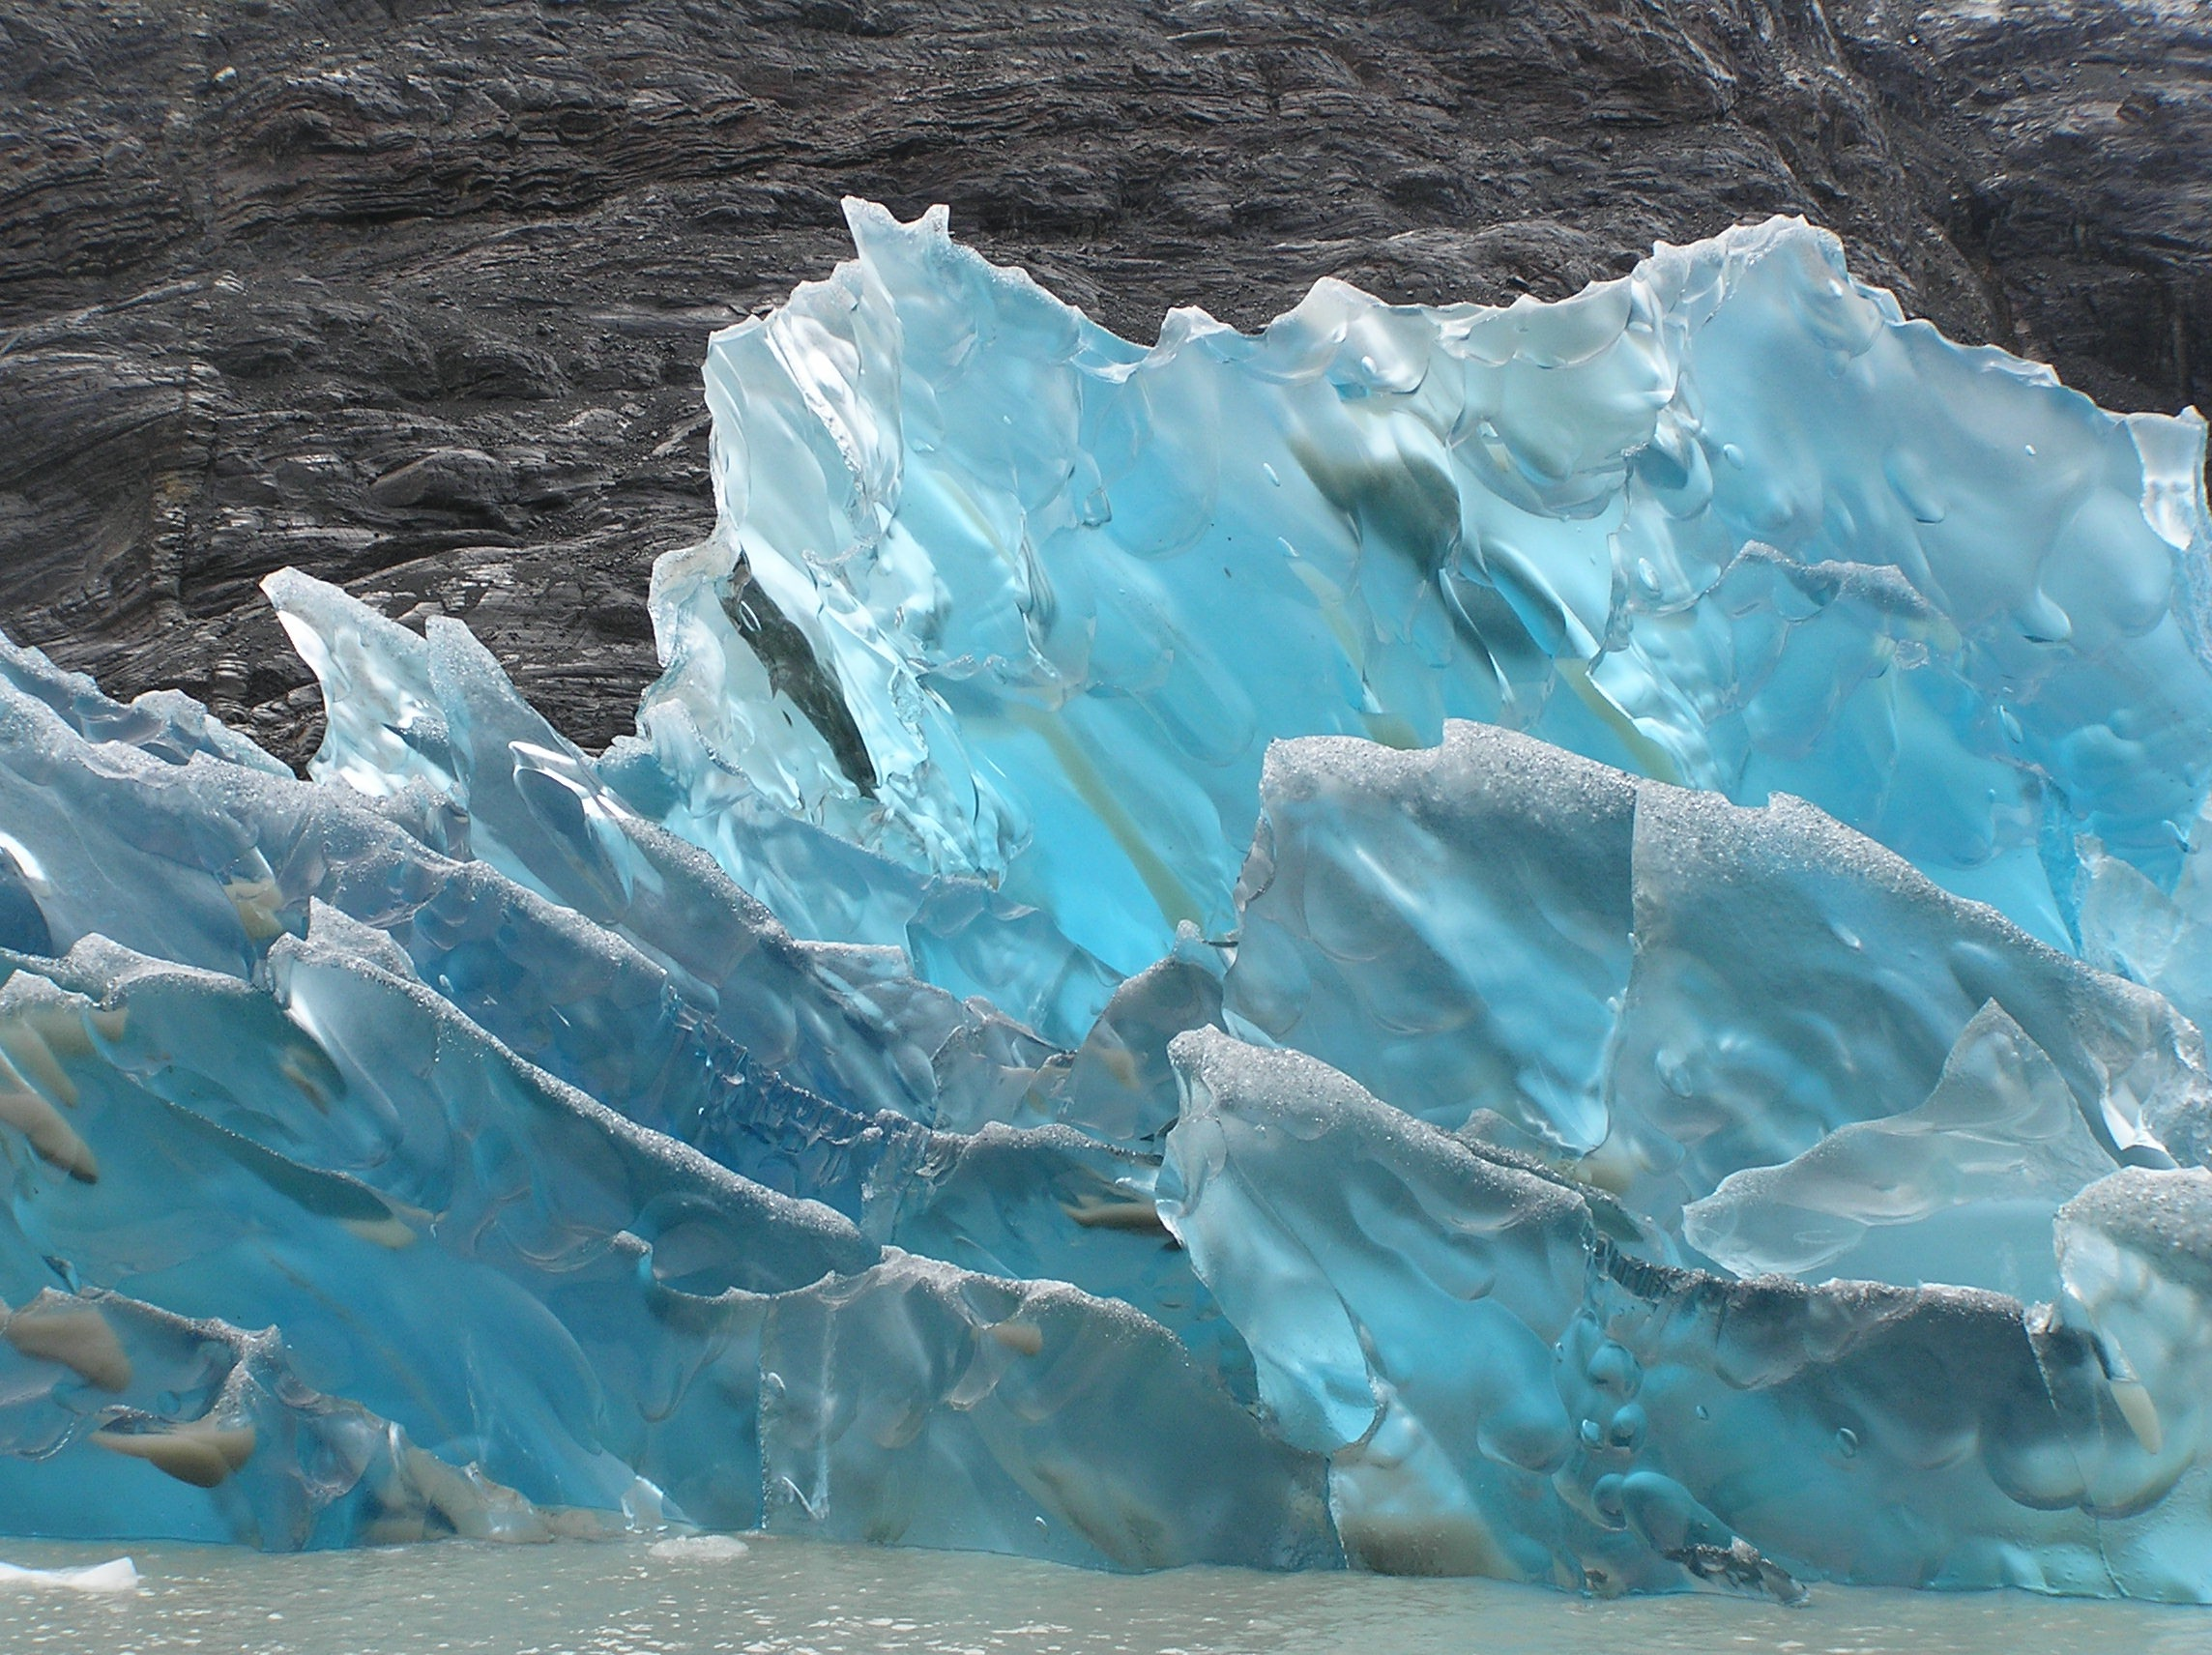 The icy edges of an aquamarine glacier. <em>Photo Credit: Luis